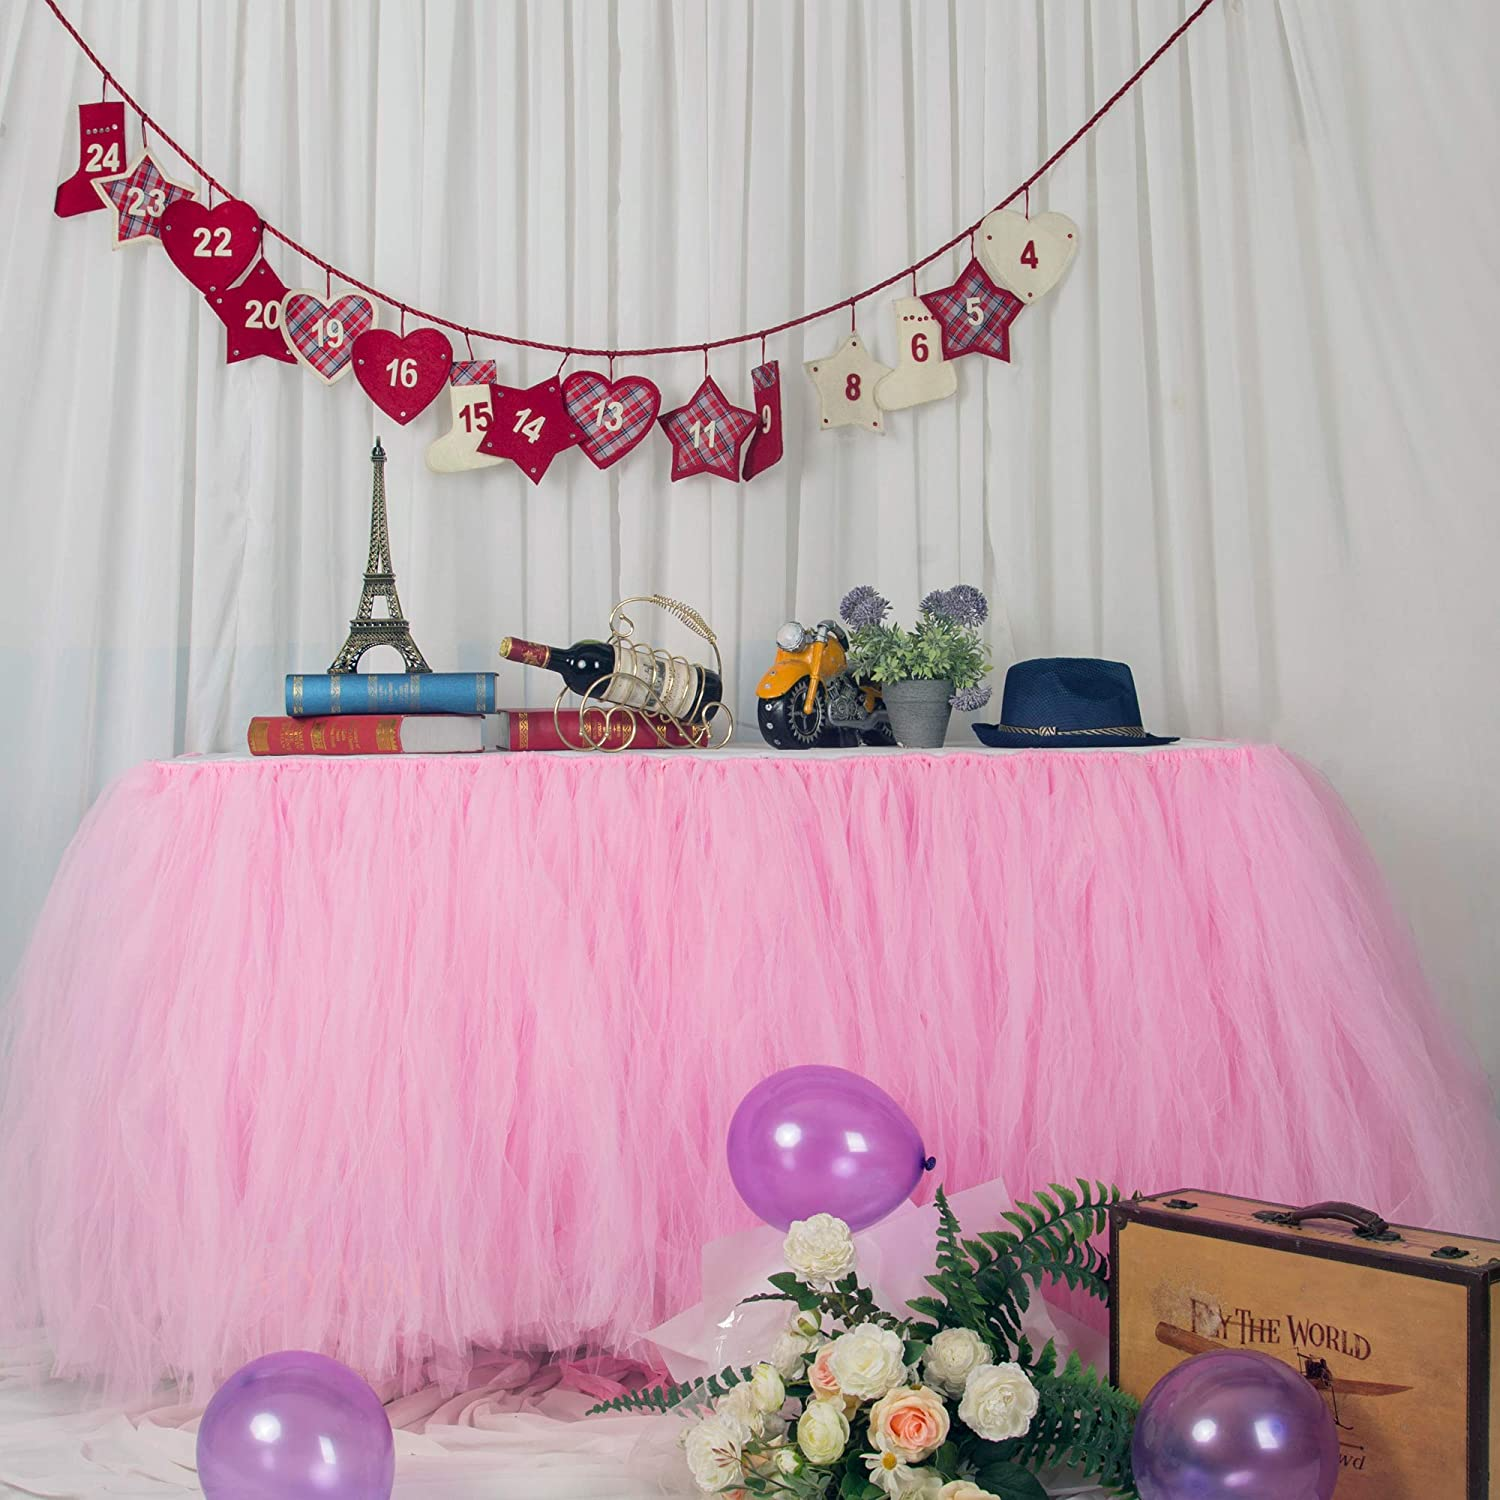 Bar MYMM Table Skirt Blue Valentines Day Christmas for Baby Shower Romantic Tulle desk gauze Prom Wedding Birthday Snowflake Wonderland Tutu Table Cloth Party Table Decoration